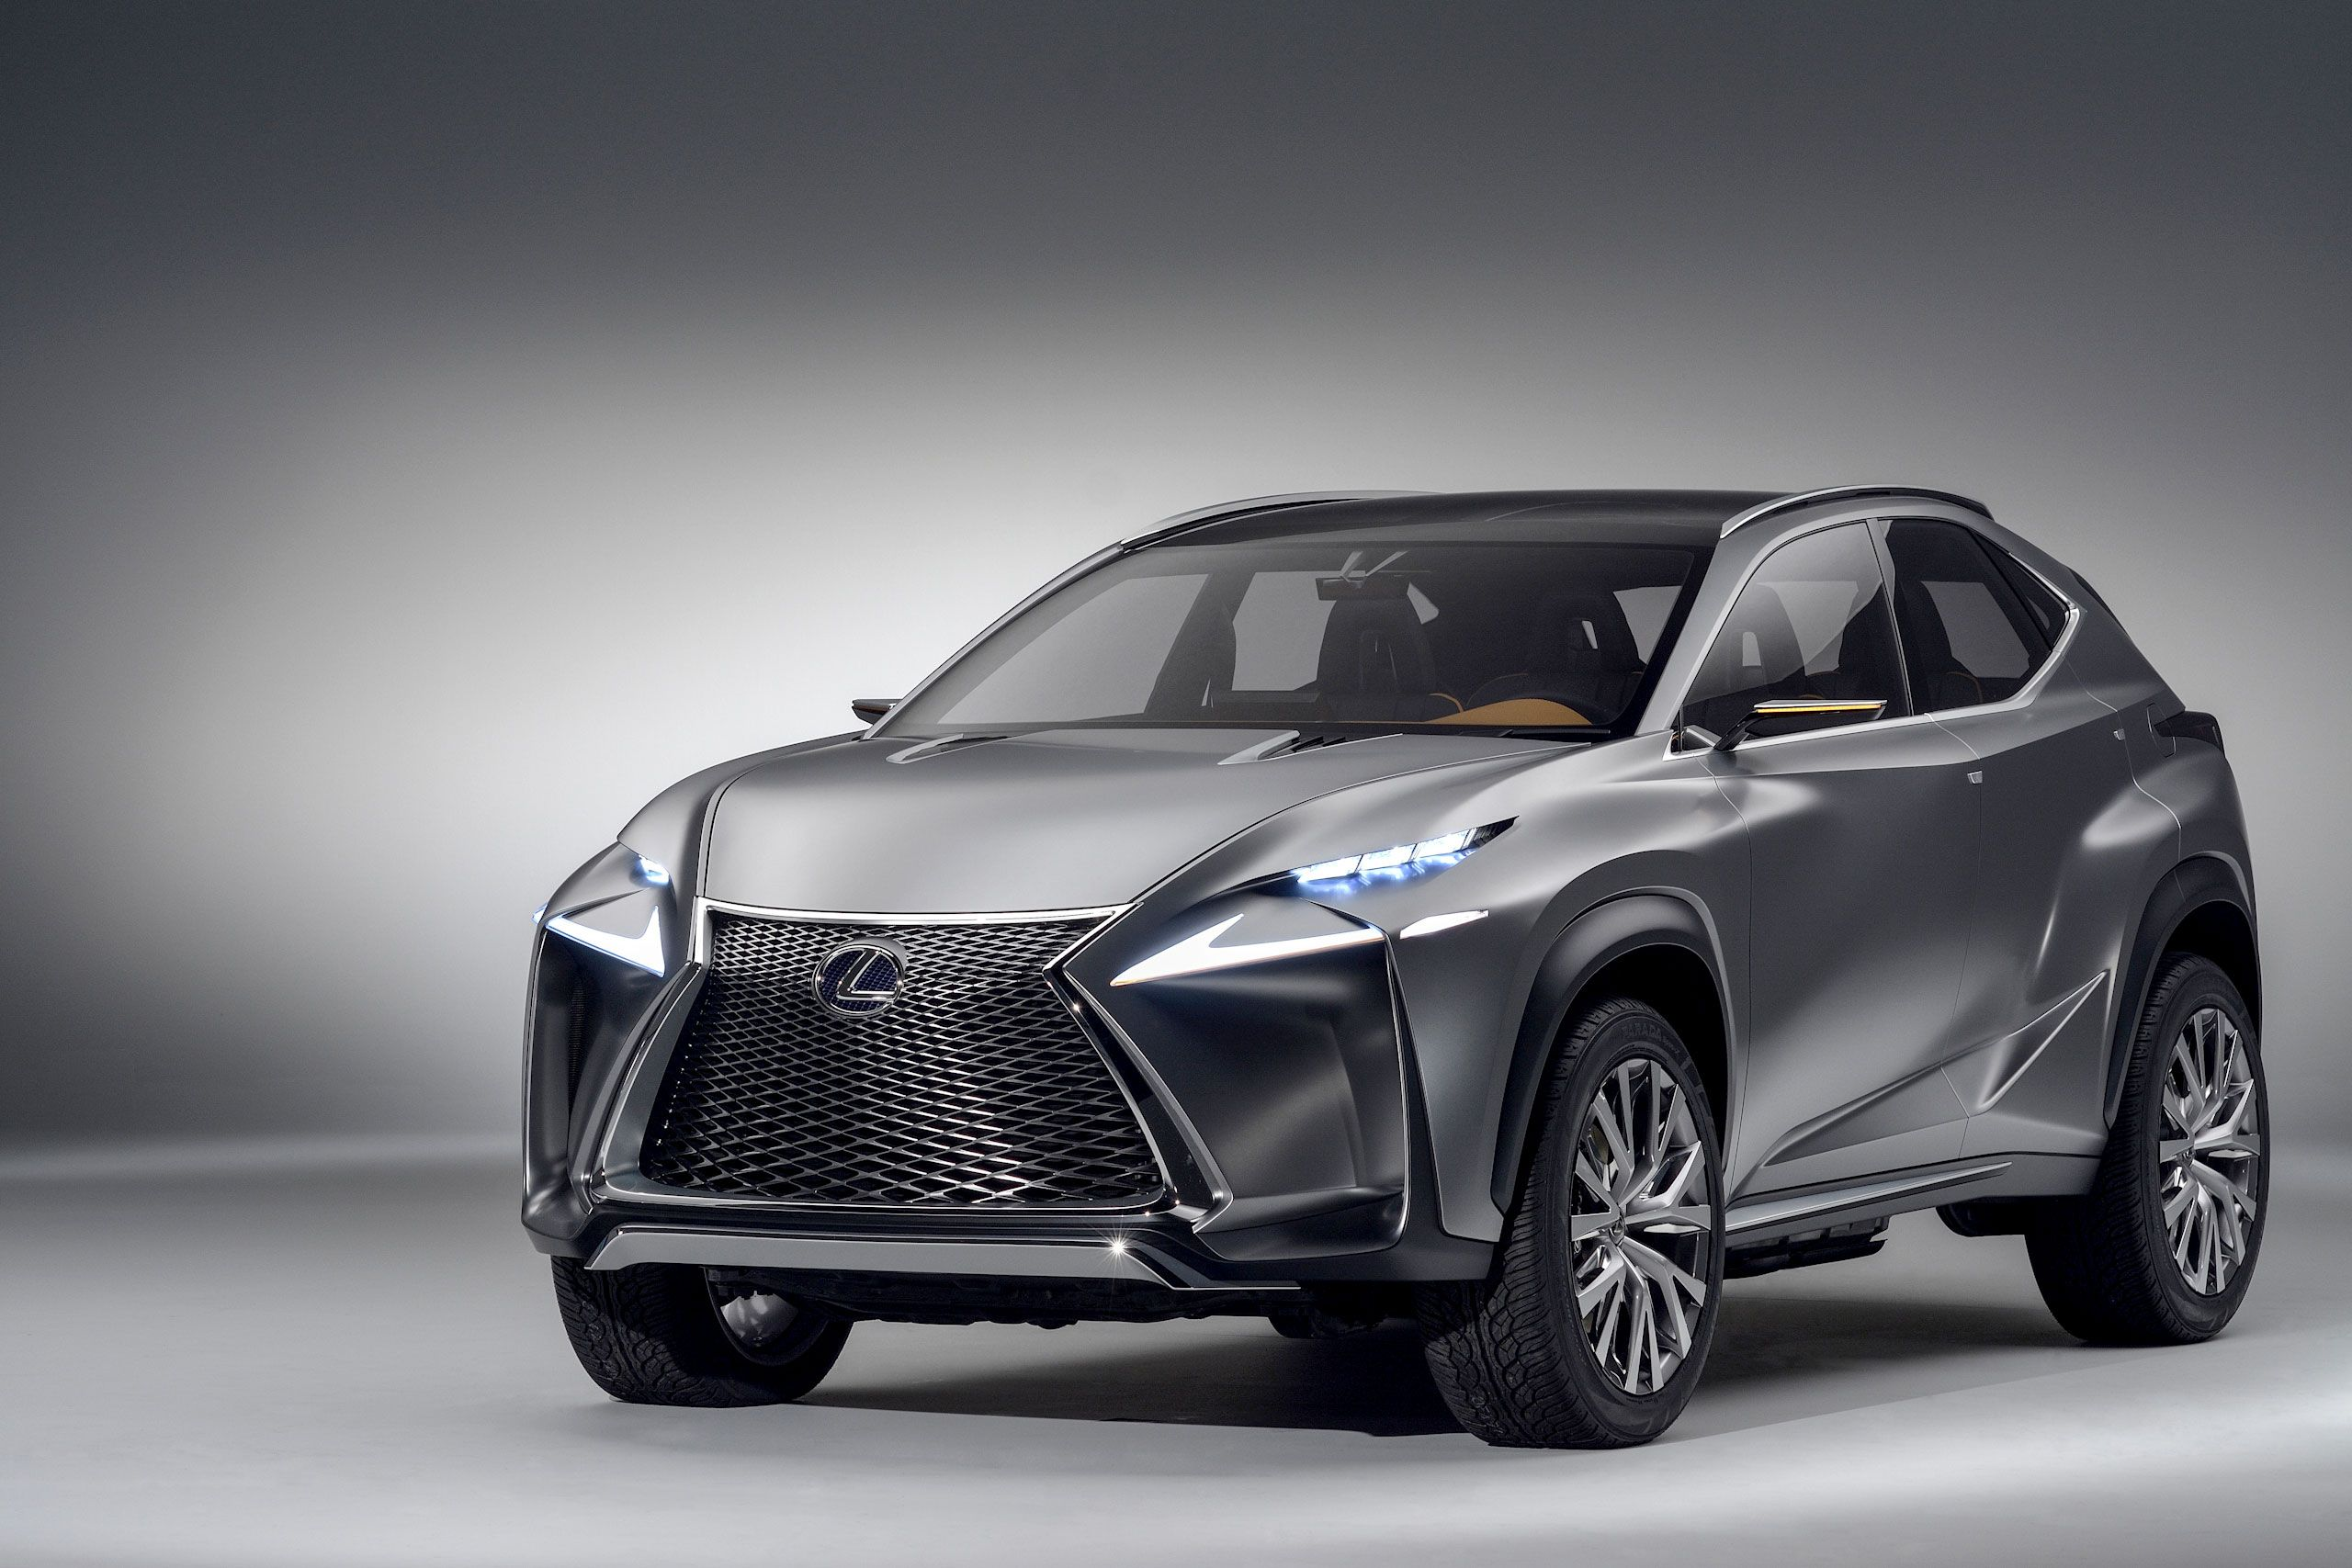 Lexus LF NX pact Crossover Concept hd wallpaper